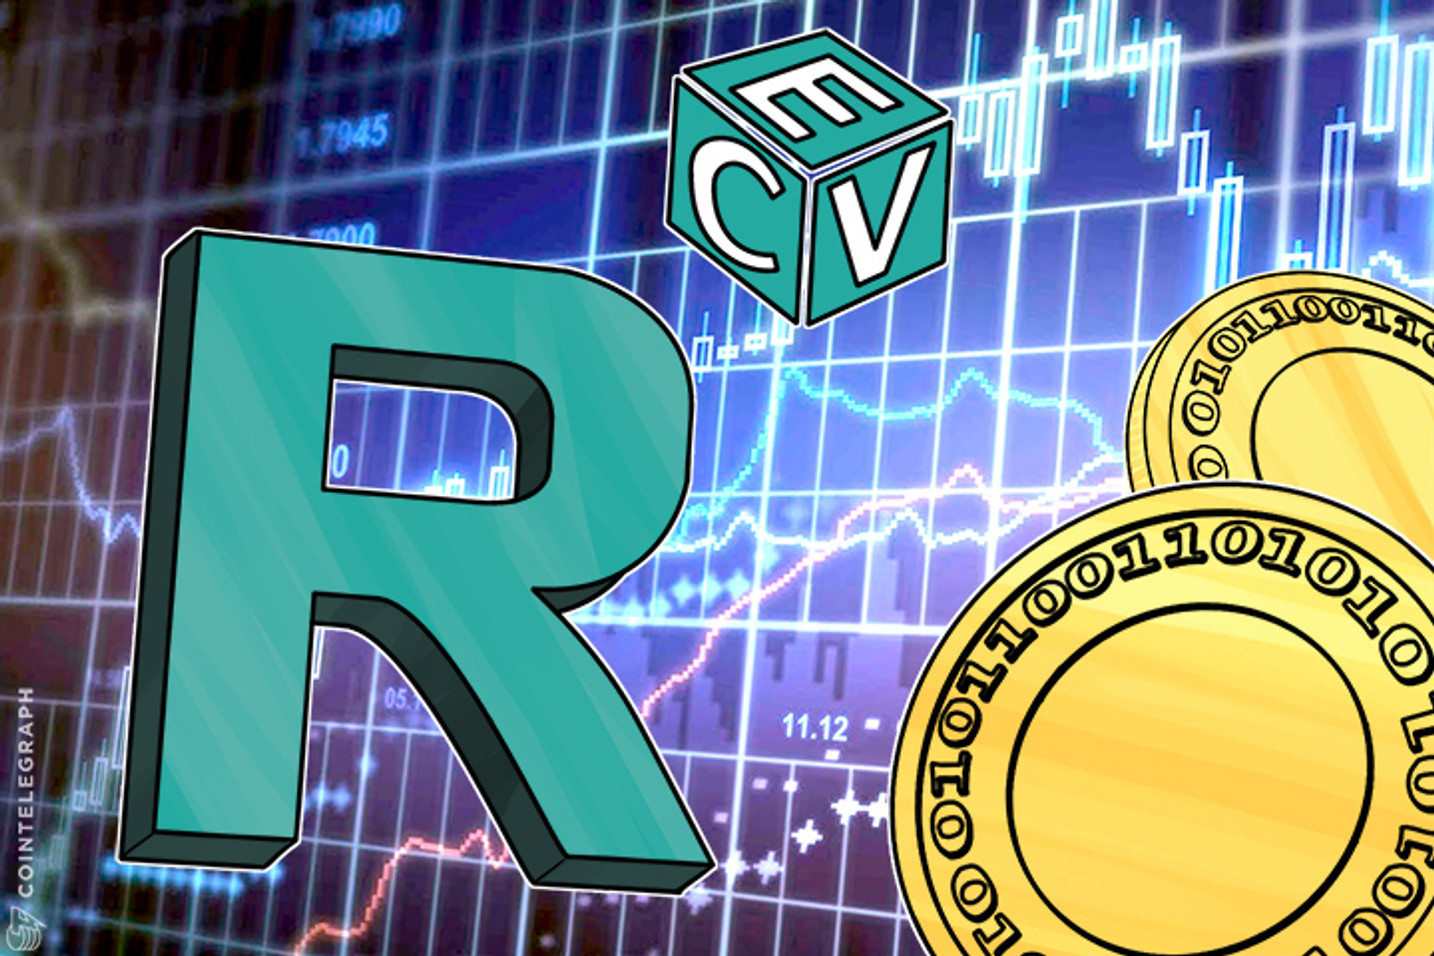 Corda Will Support Digital Currencies, R3 Confirms